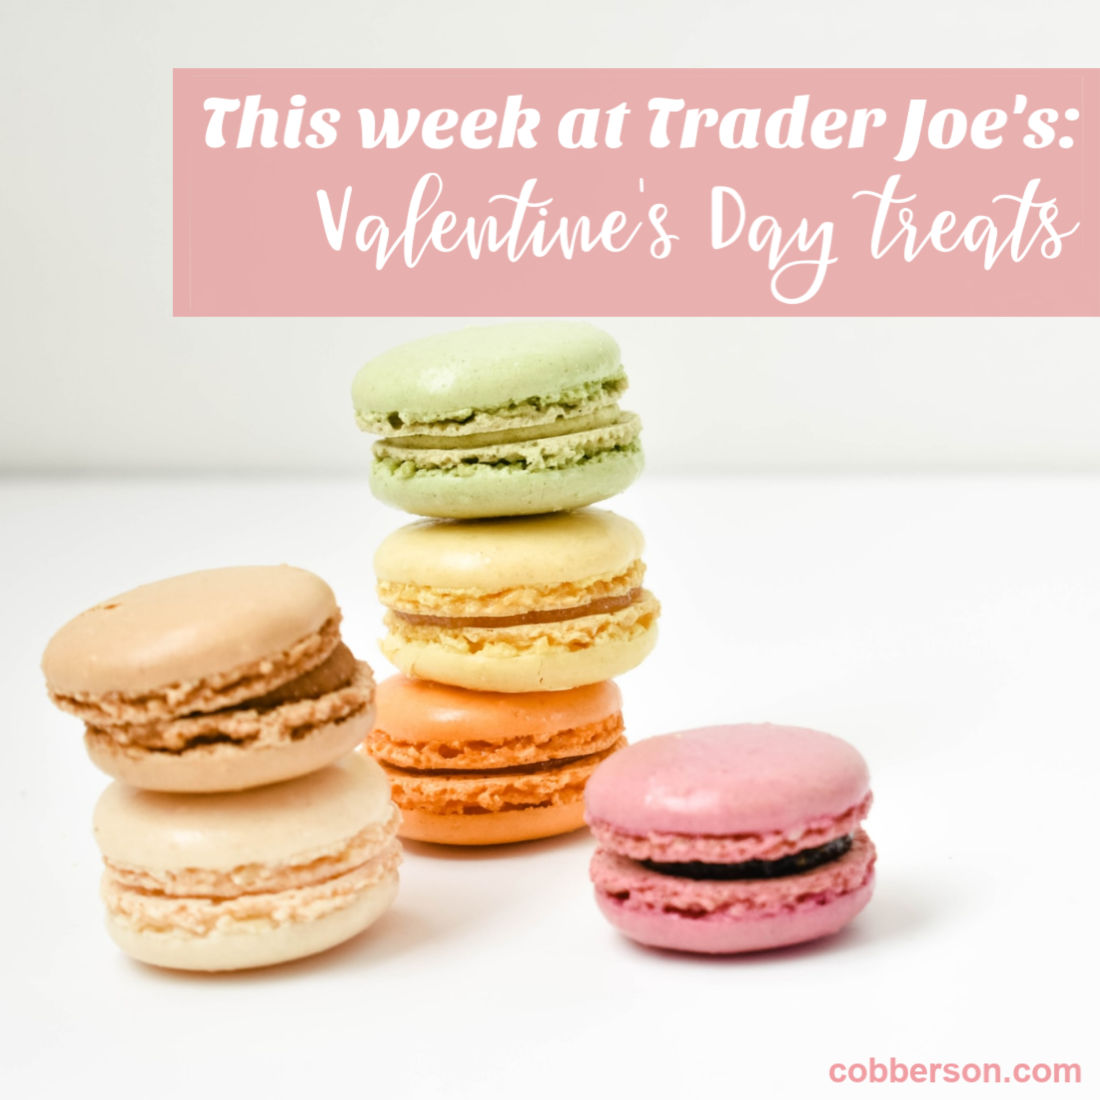 This week at Trader Joe's: Valentine's Day treats